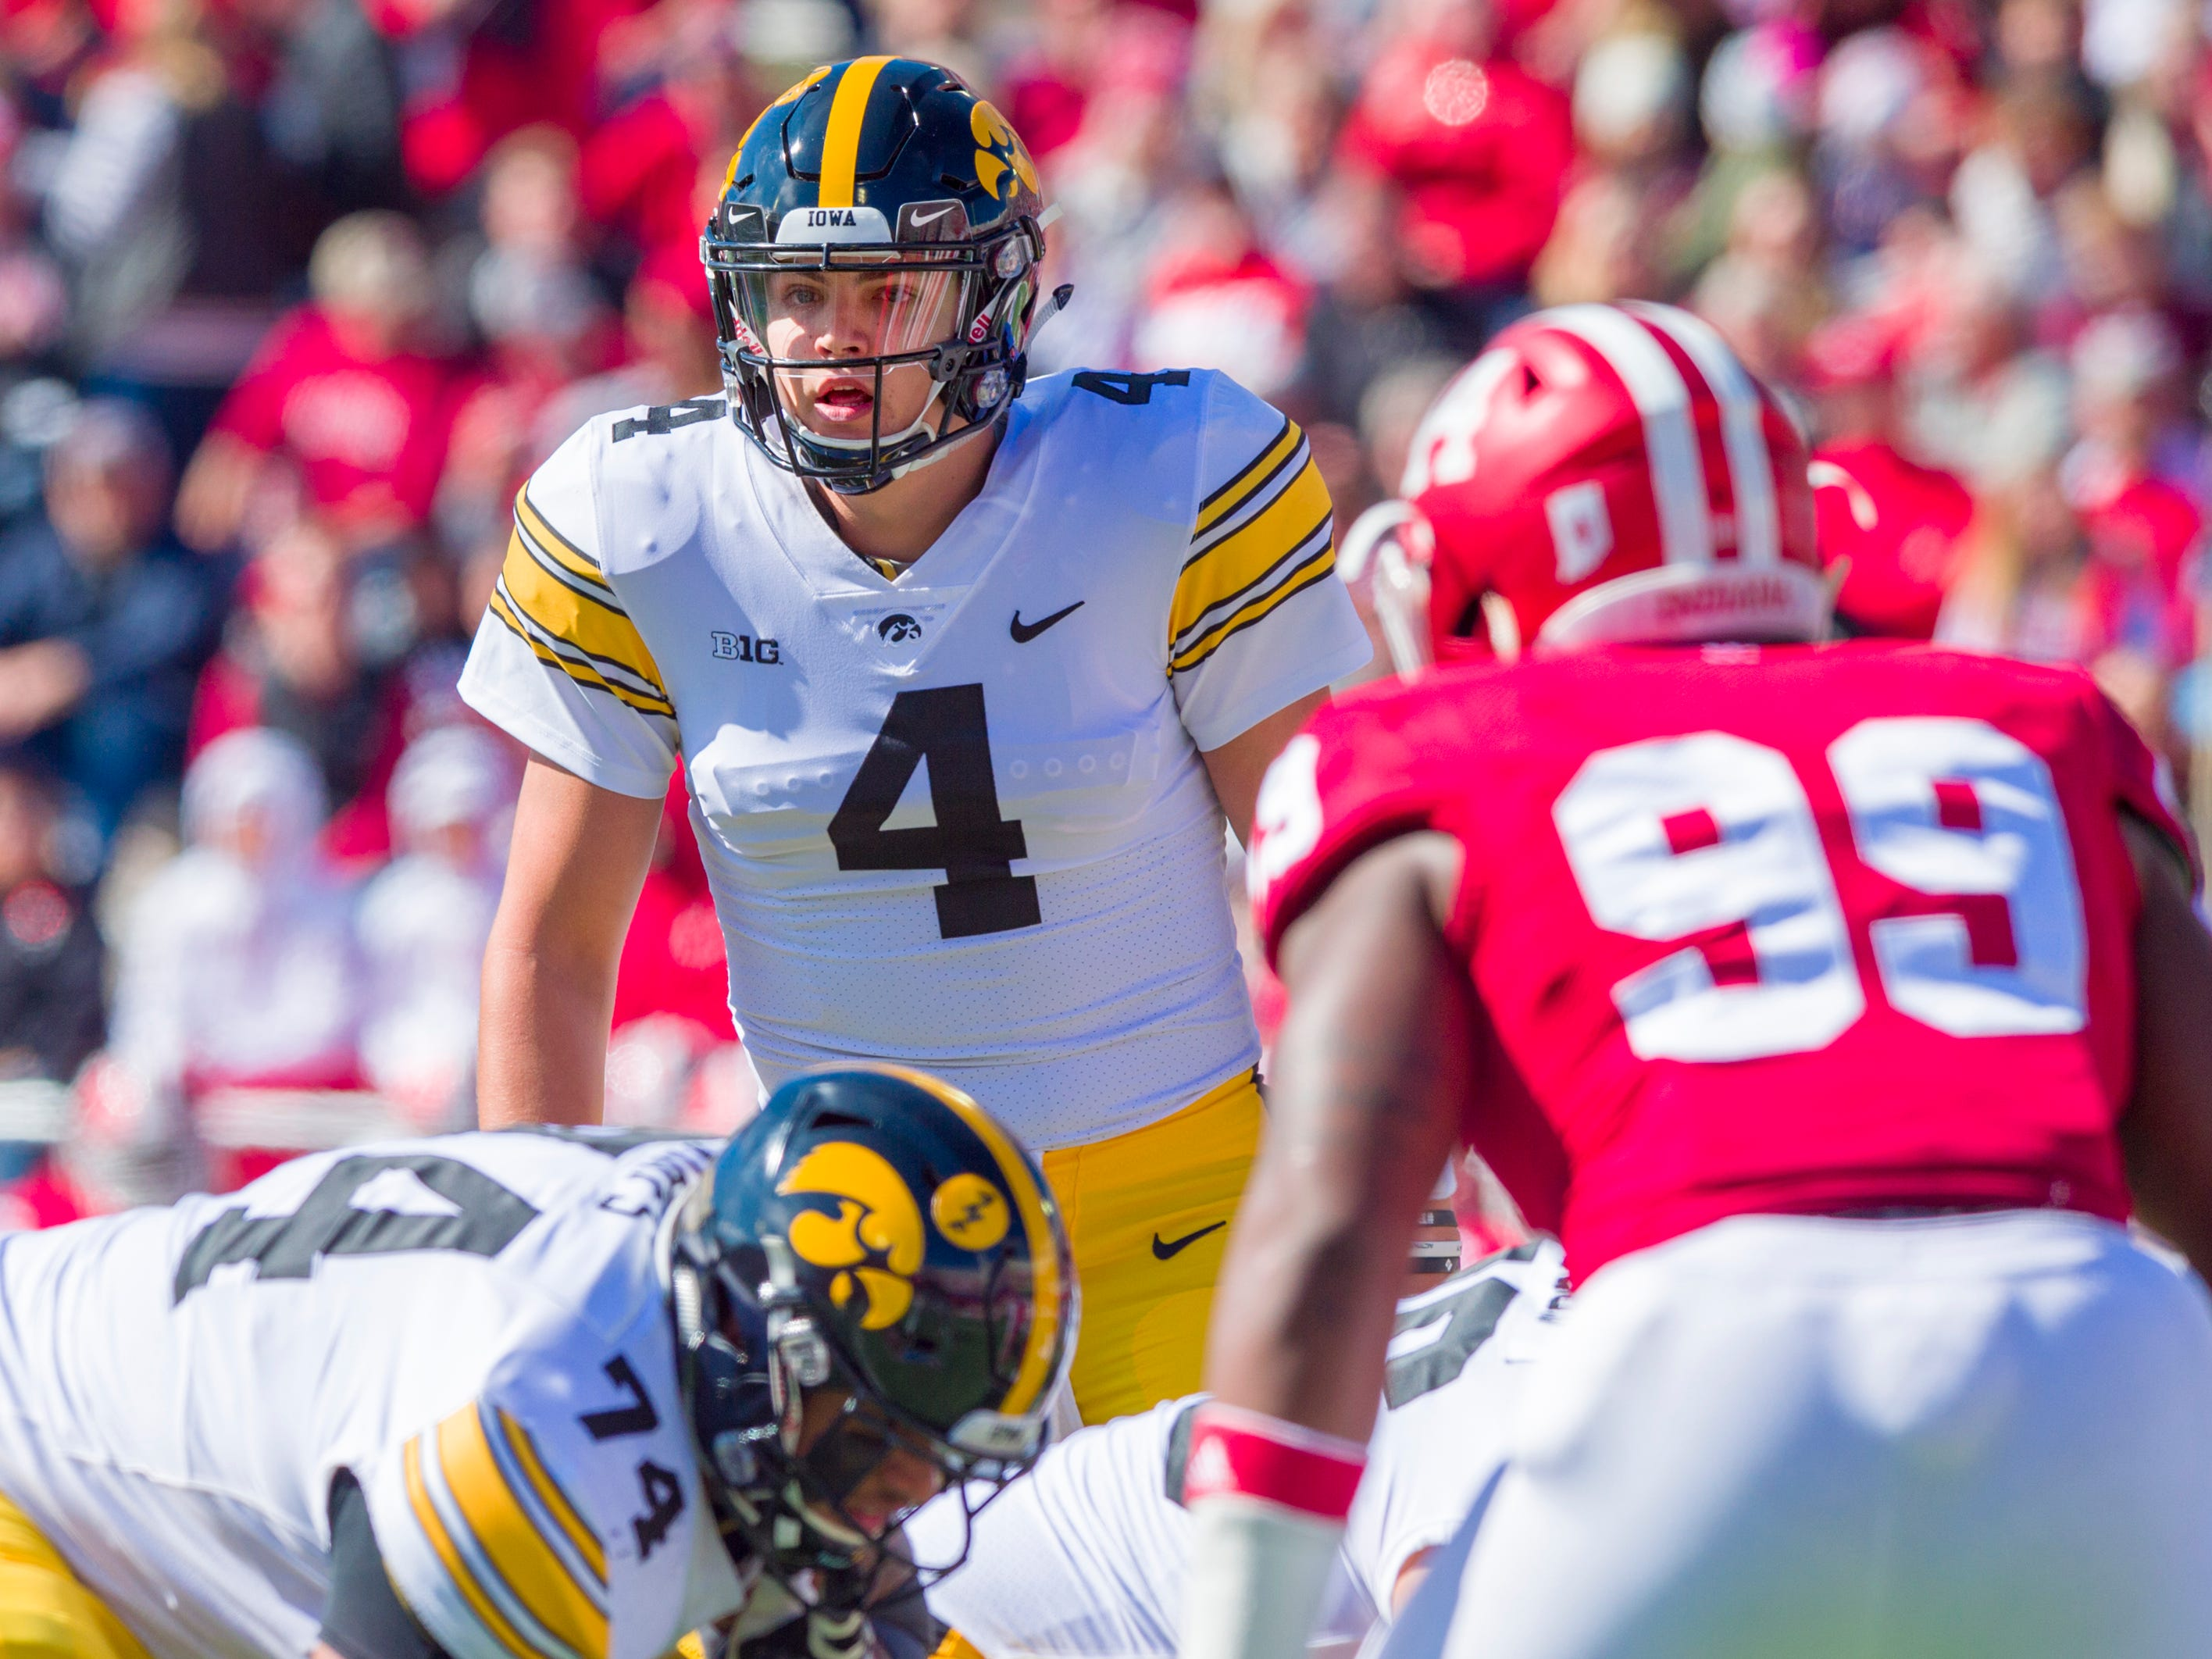 Iowa quarterback Nate Stanley (4) calls a play out to the offense during the first half of an NCAA college football game against Indiana, Saturday, Oct. 13 2018, in Bloomington, Ind. (AP Photo/Doug McSchooler)